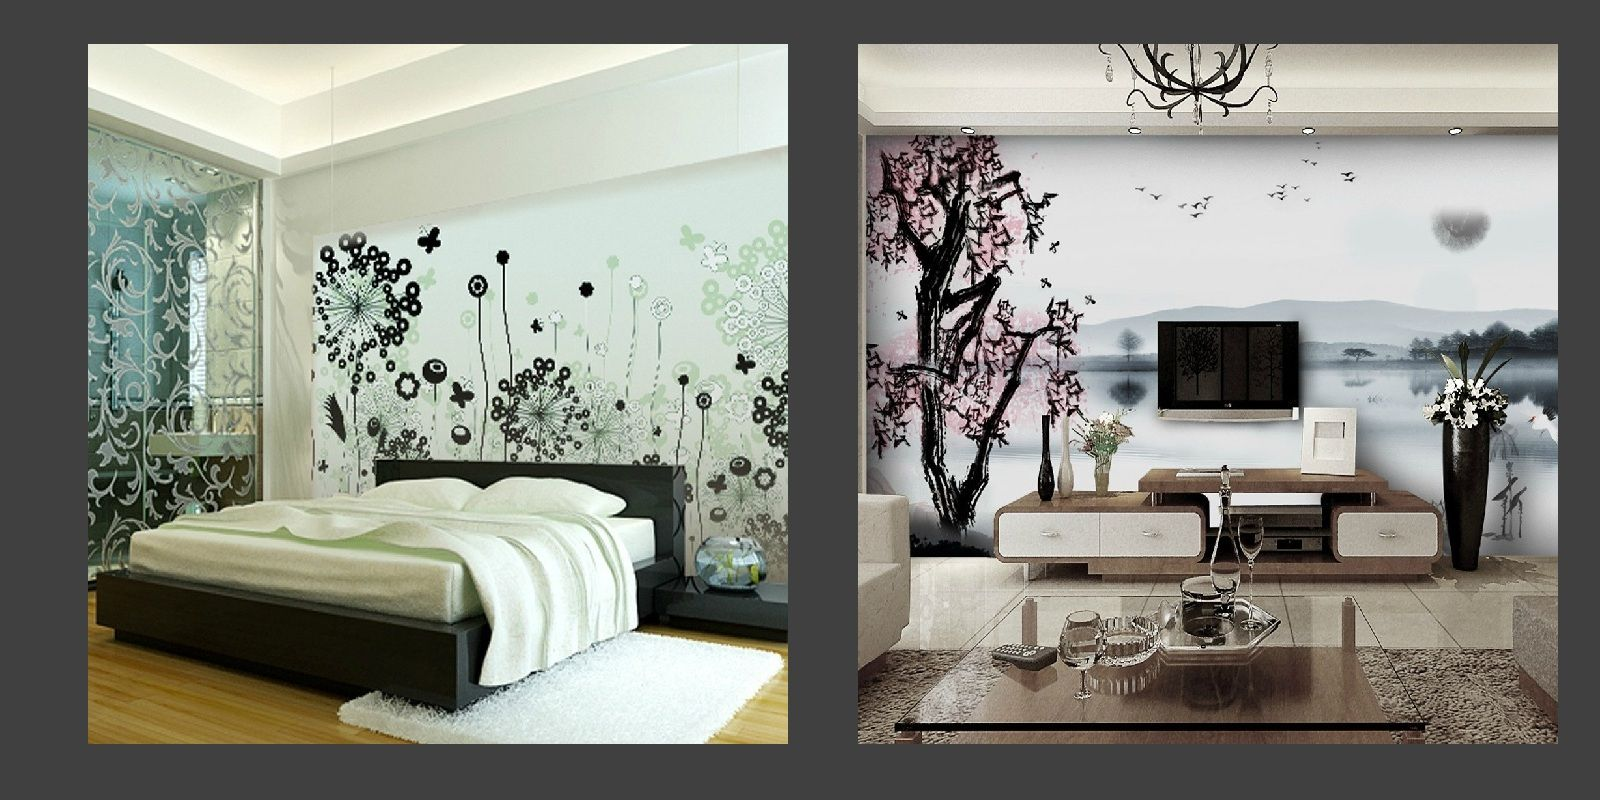 Home wallpaper design patterns home wallpaper designs for Home wallpaper designs for living room